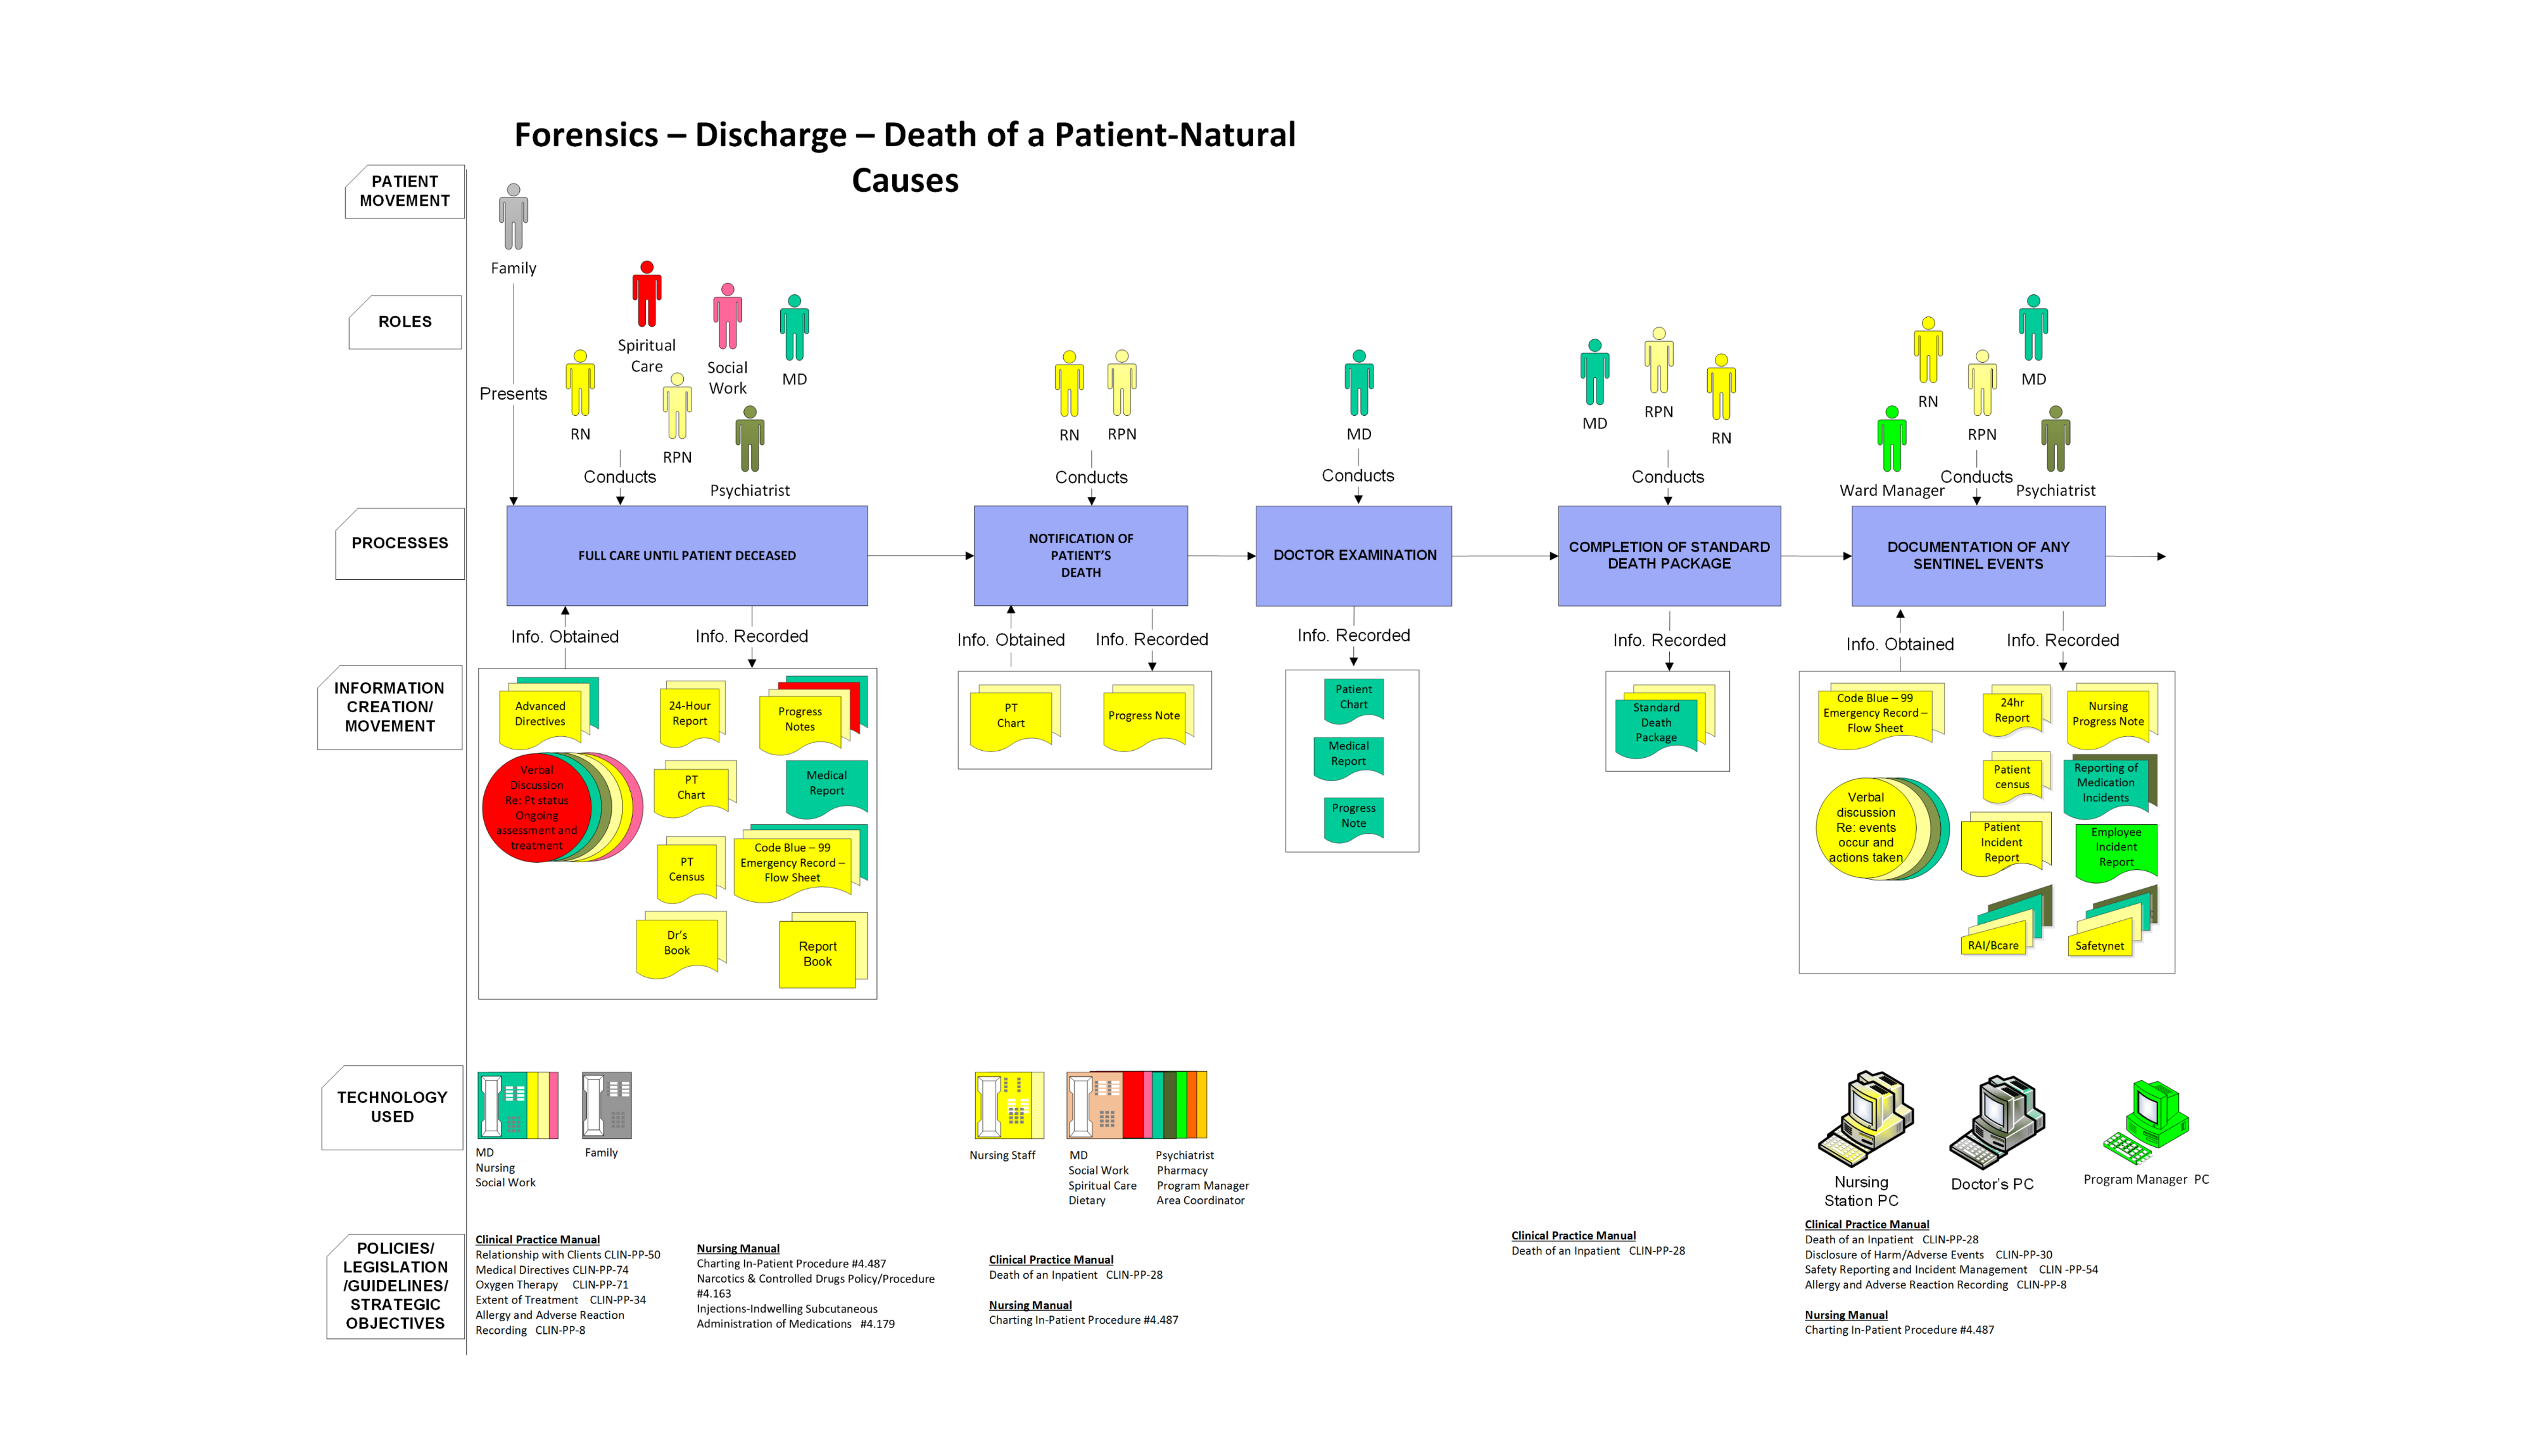 Jhf an evaluation of understandability of patient journey models pajma model of forensic unit discharge process nvjuhfo Images